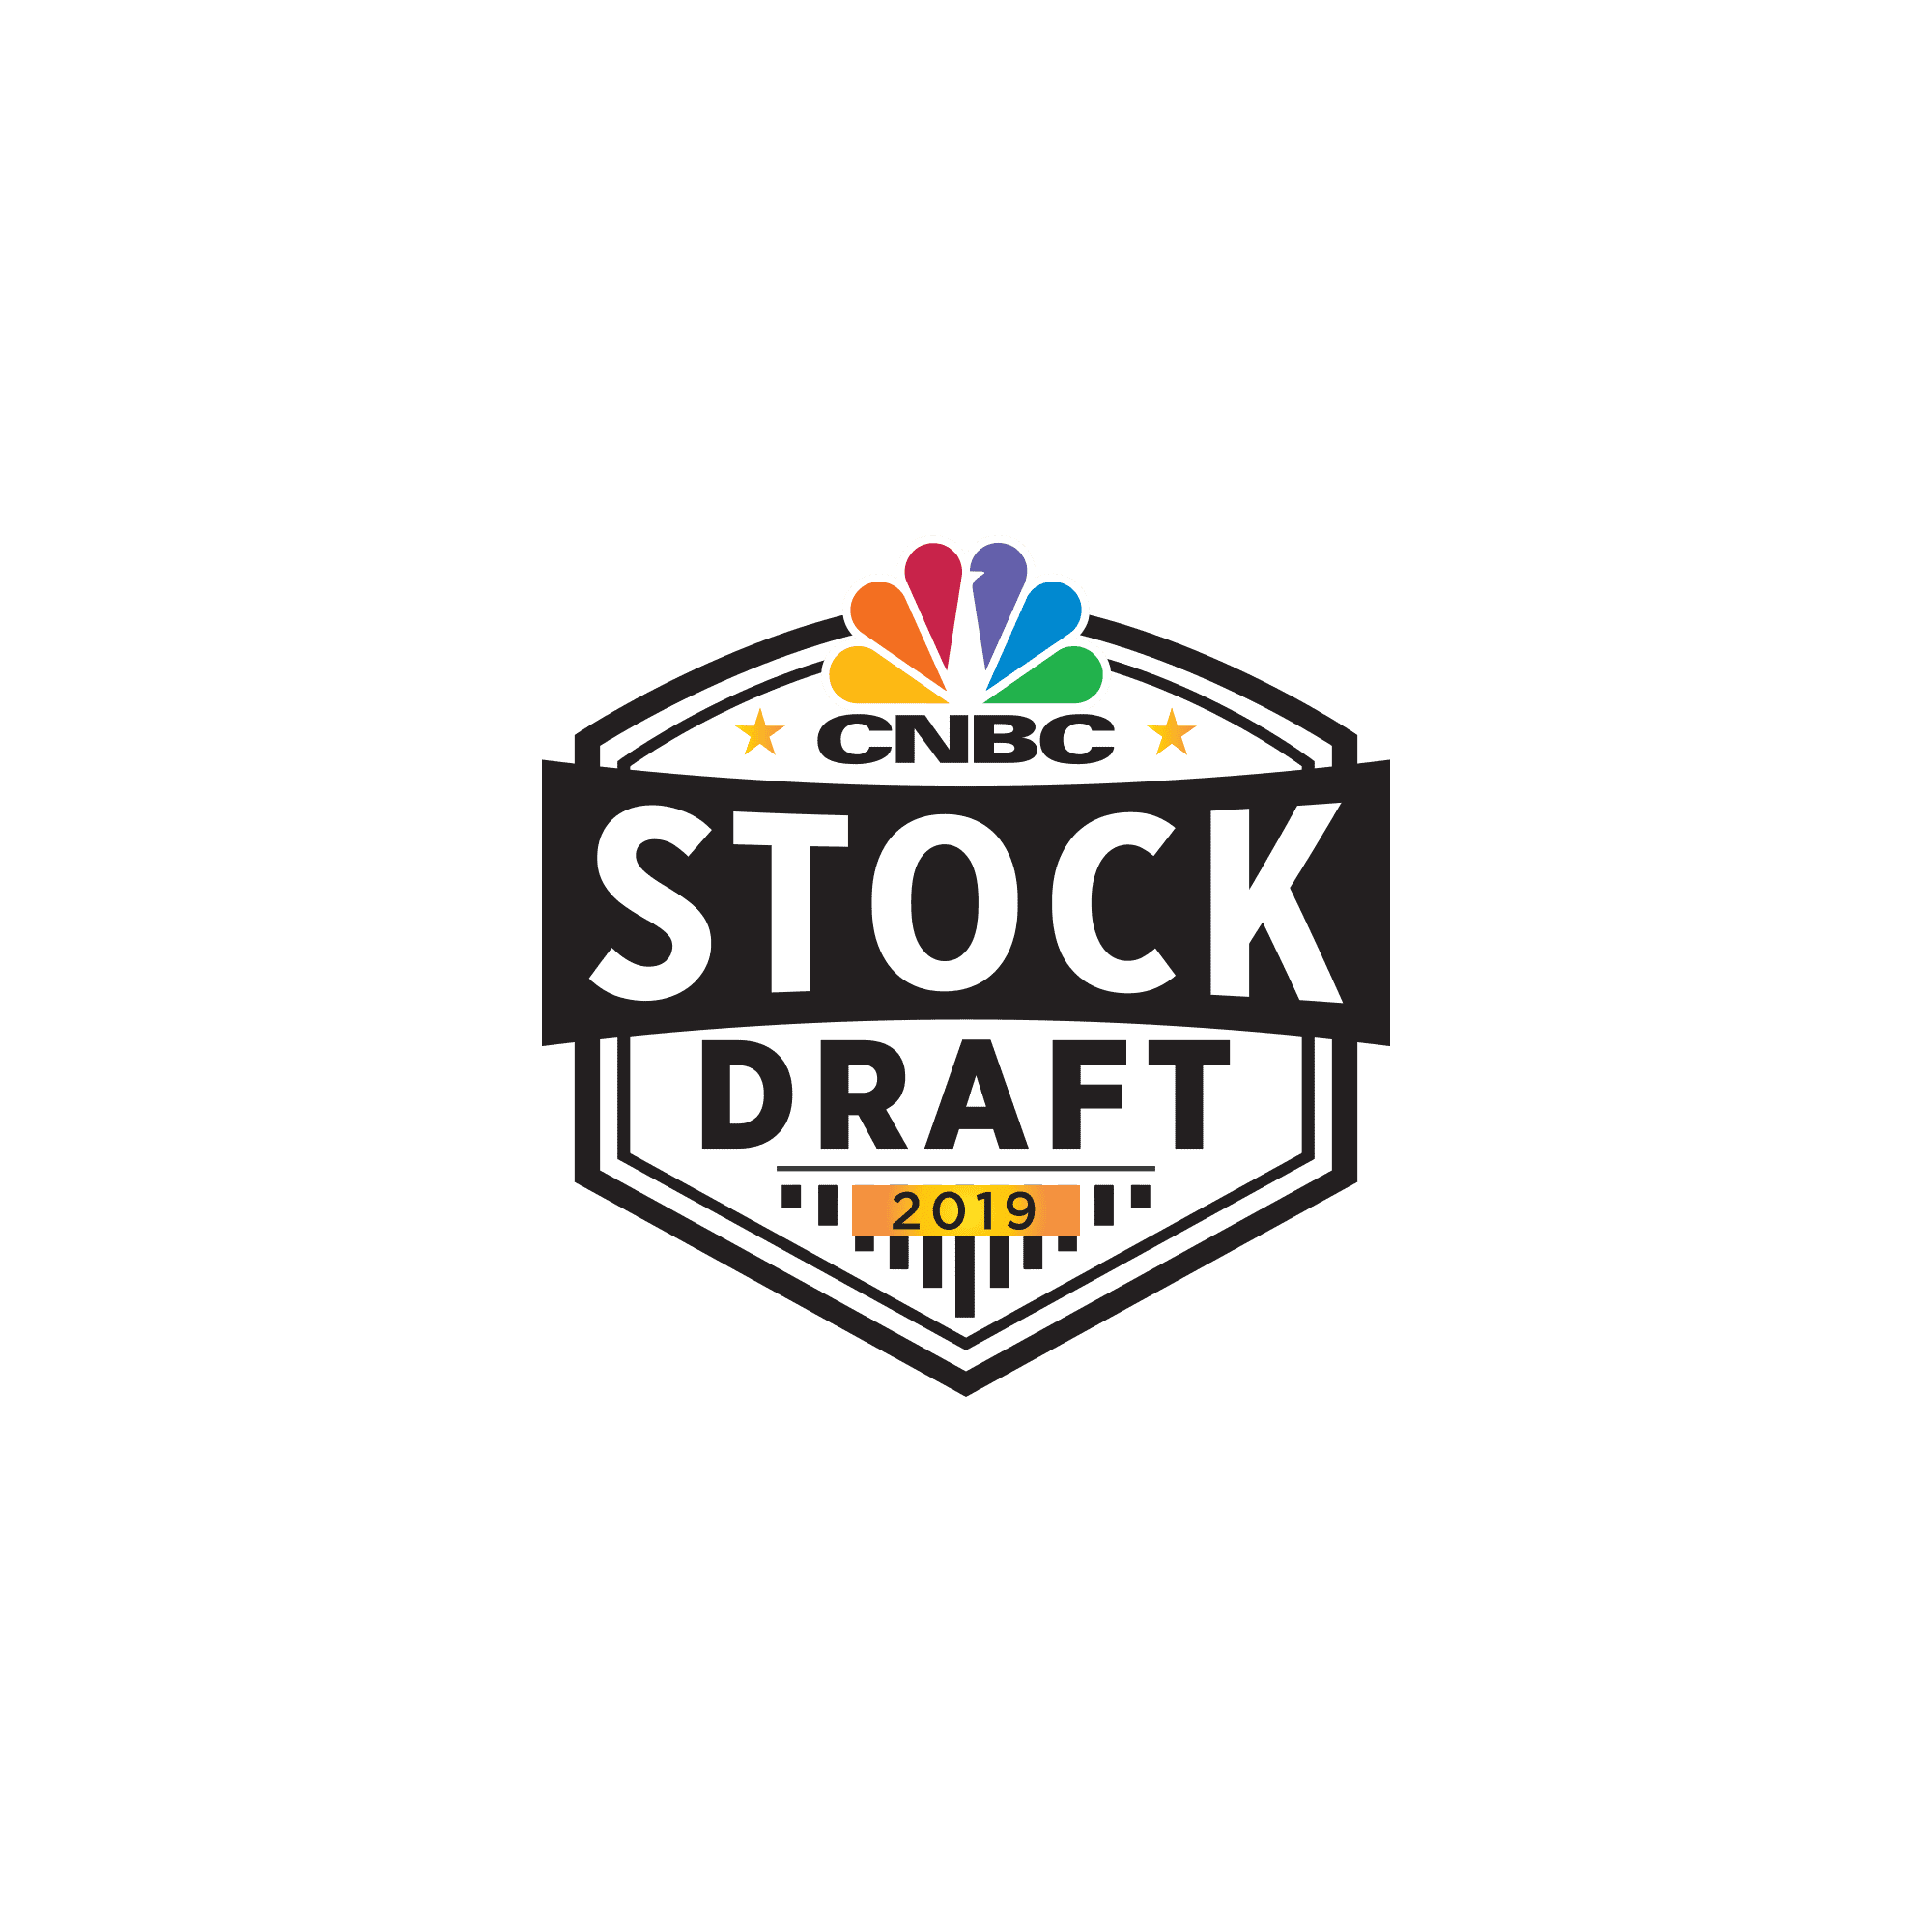 CNBC Stock Draft Leaderboard